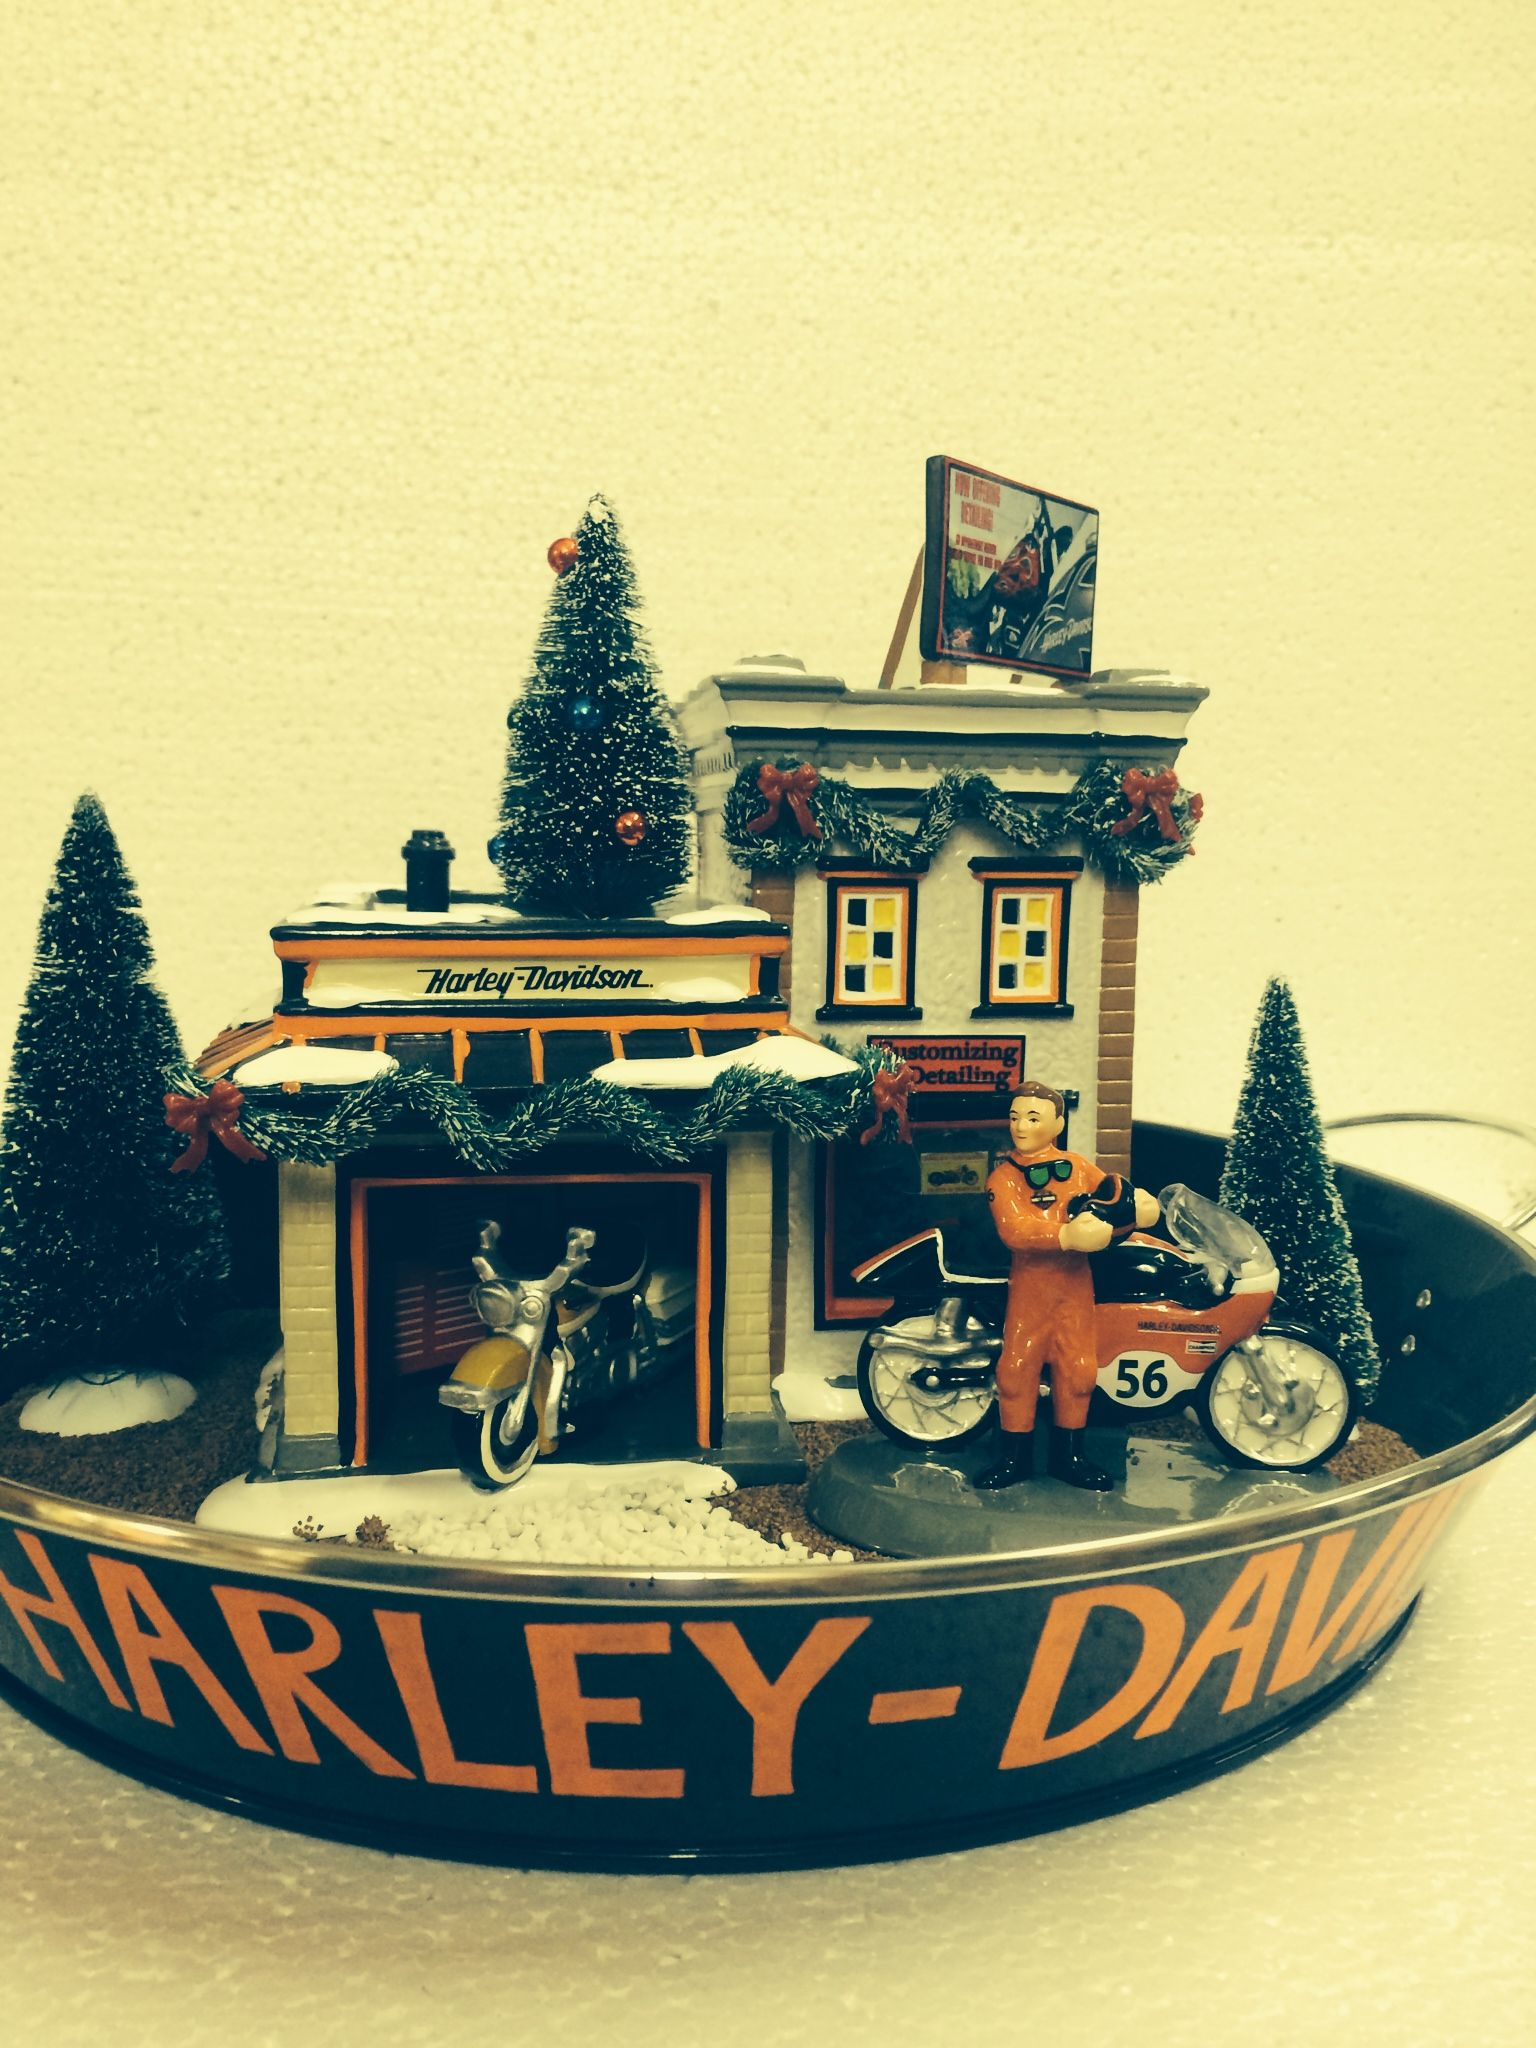 Another Great Way To Show Off Your D56 Harley Davidson Village